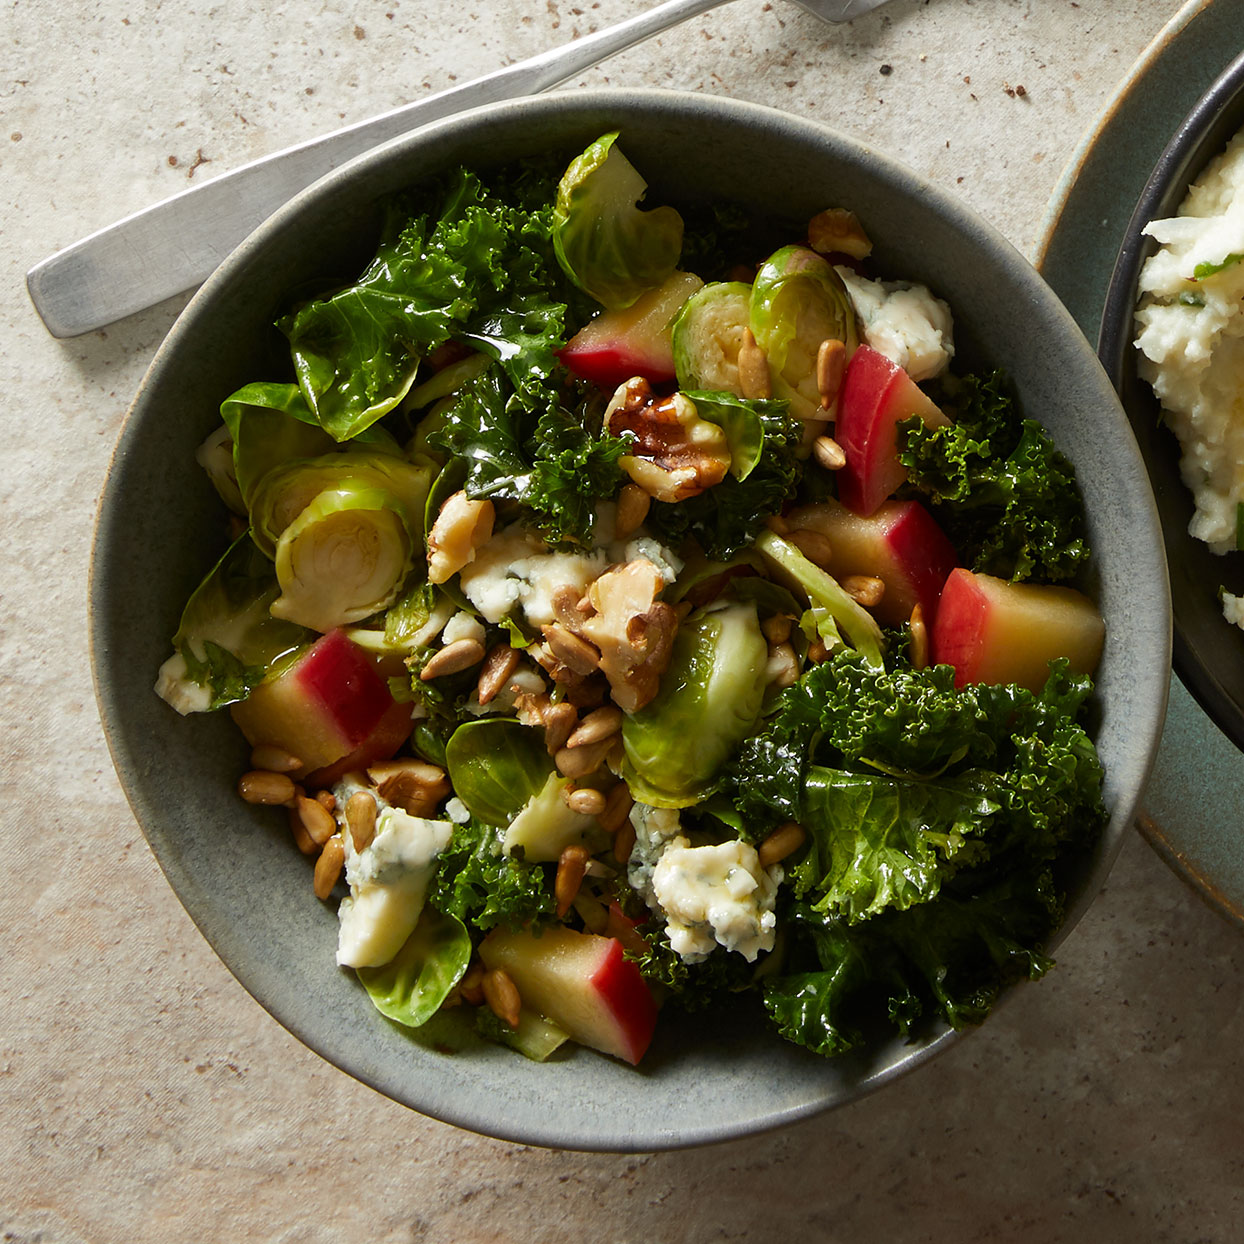 Wilted Greens with Warm Apple Vinaigrette Trusted Brands